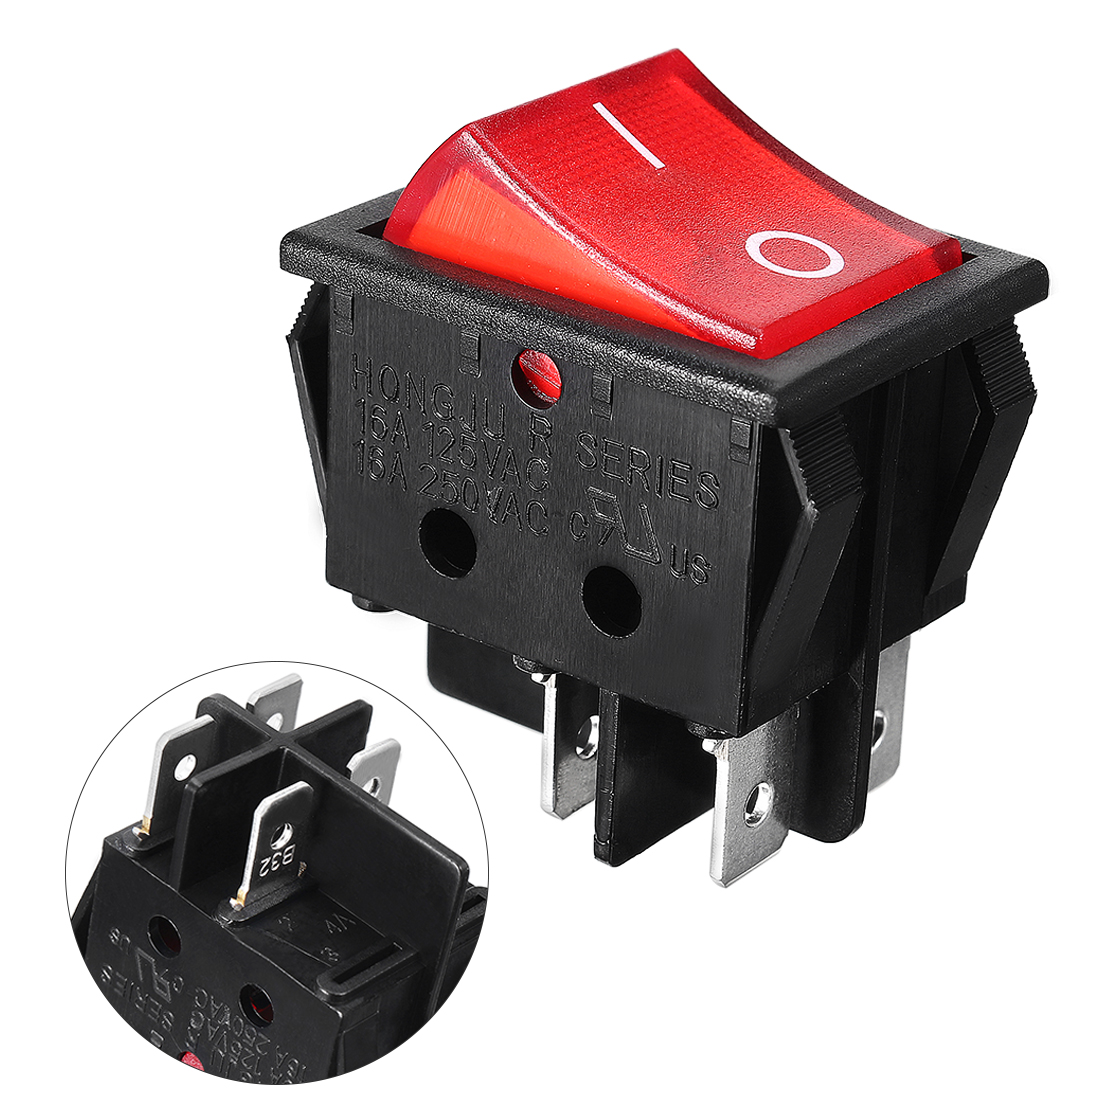 Red Light DPST ON/OFF Snap in Boat Rocker Switch 16A/250V 20A/125V AC 28x21mm